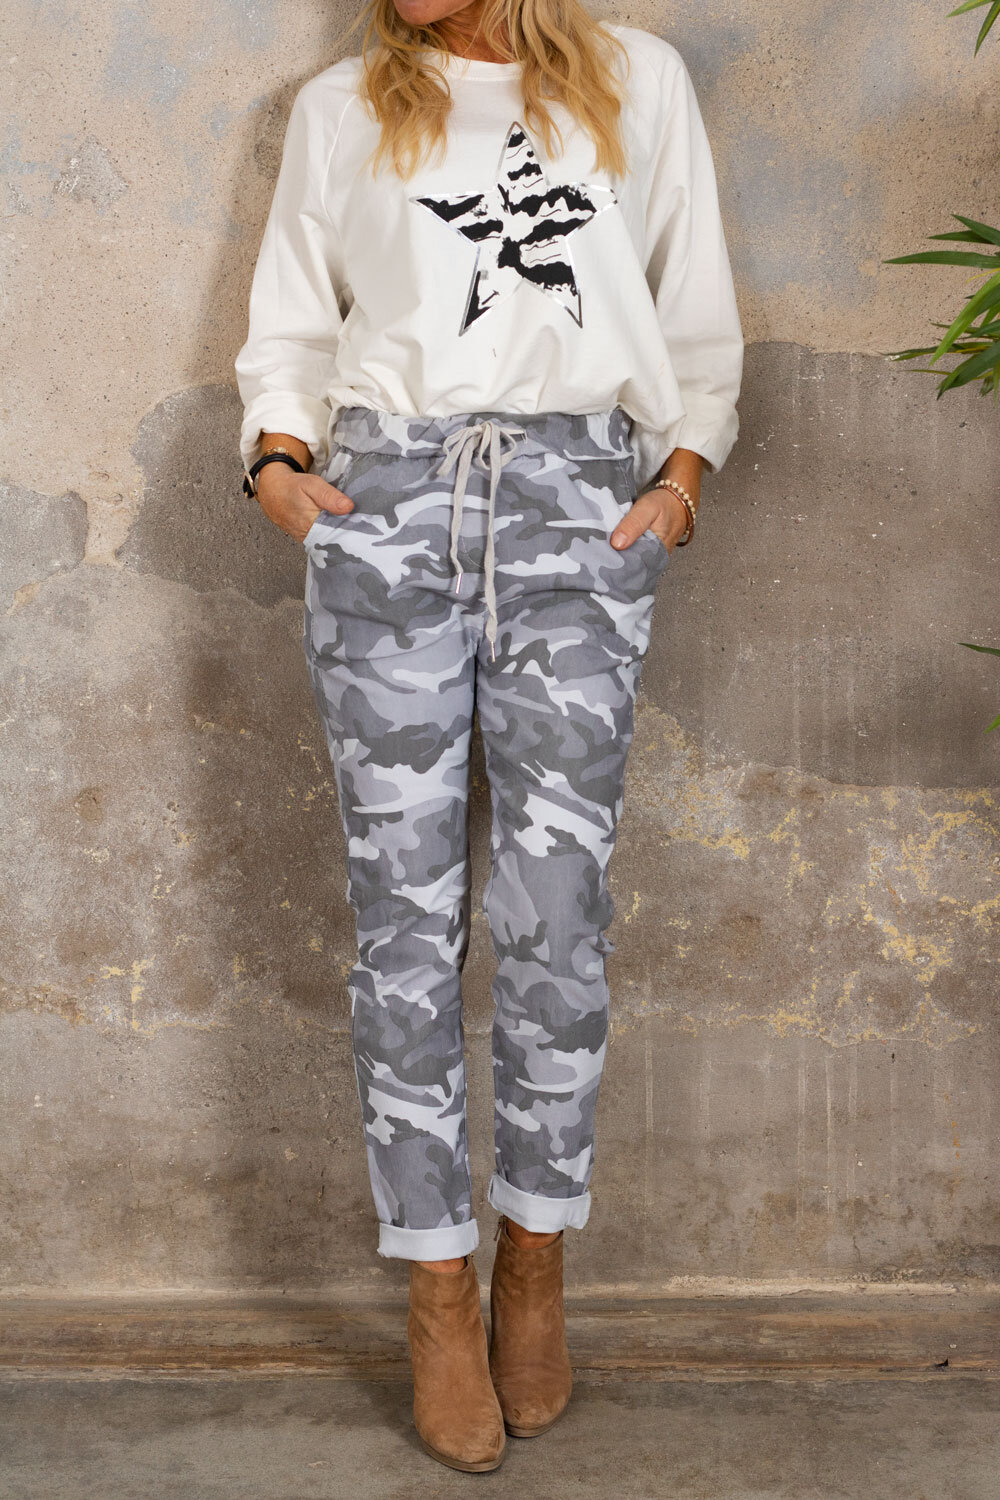 Stretchy pants 3385 - Camouflage - Gray/White